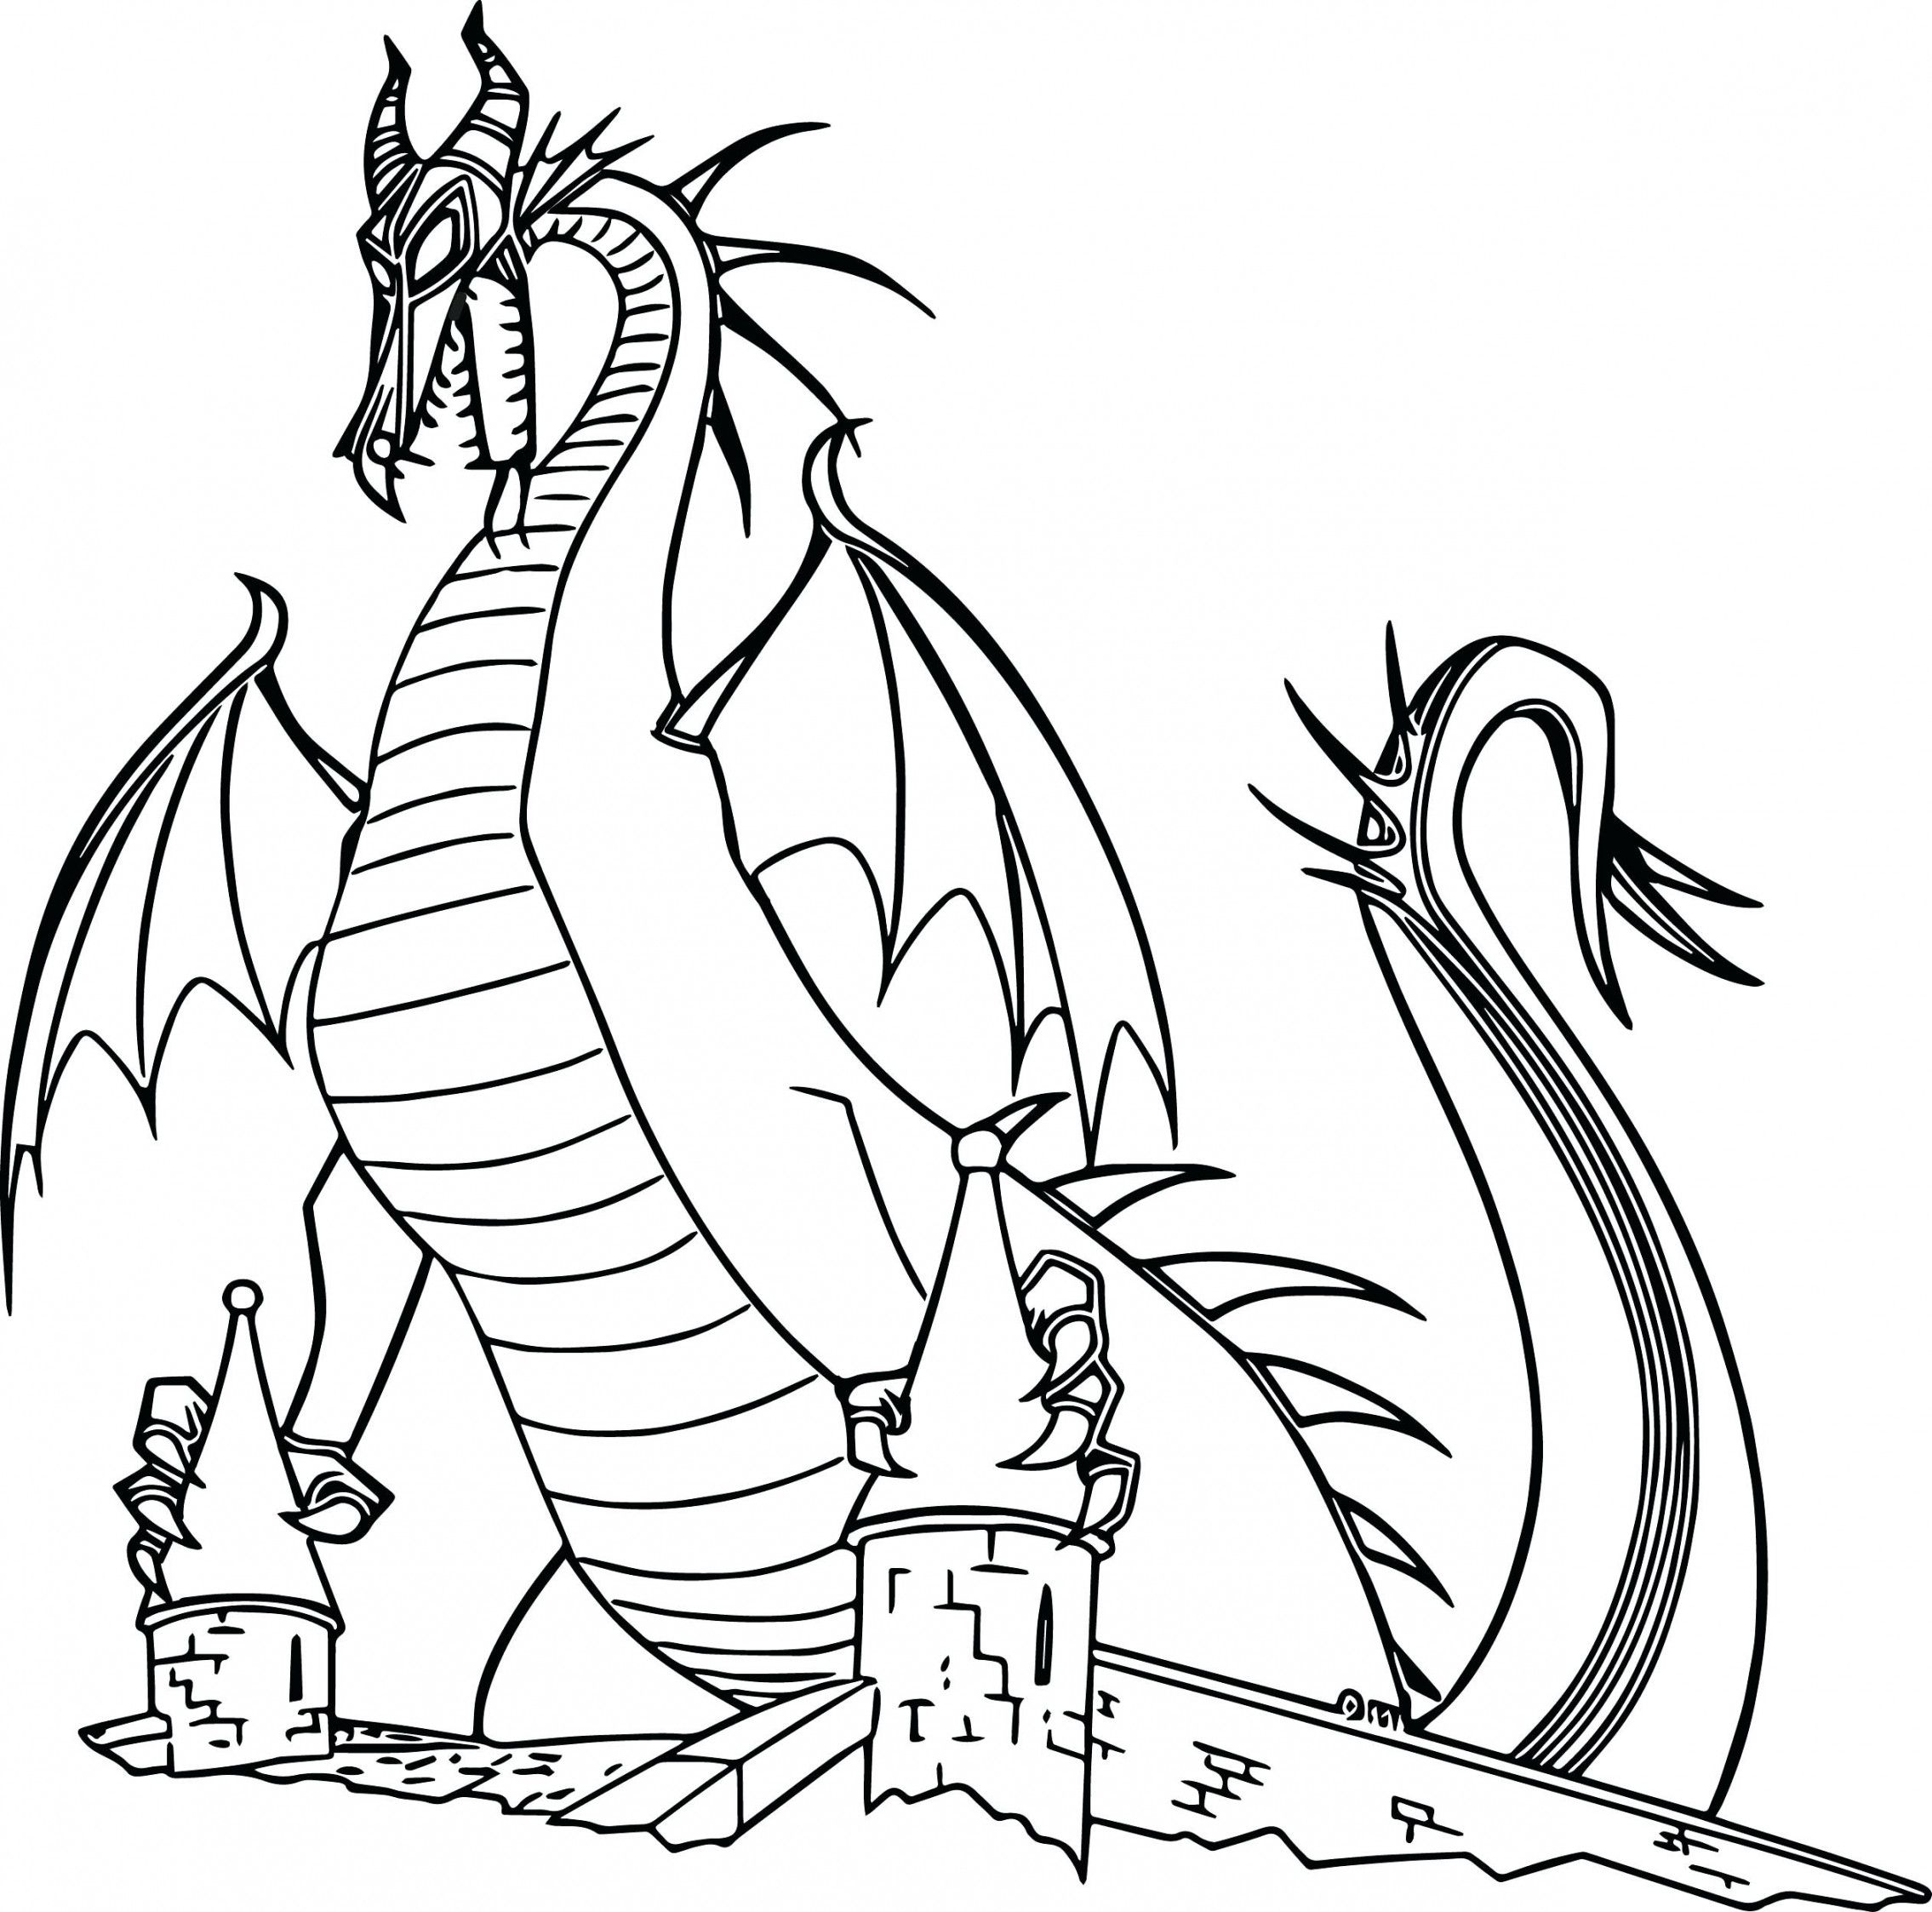 24 Vast Dinosaur King Coloring Page Dragon Coloring Page Animal